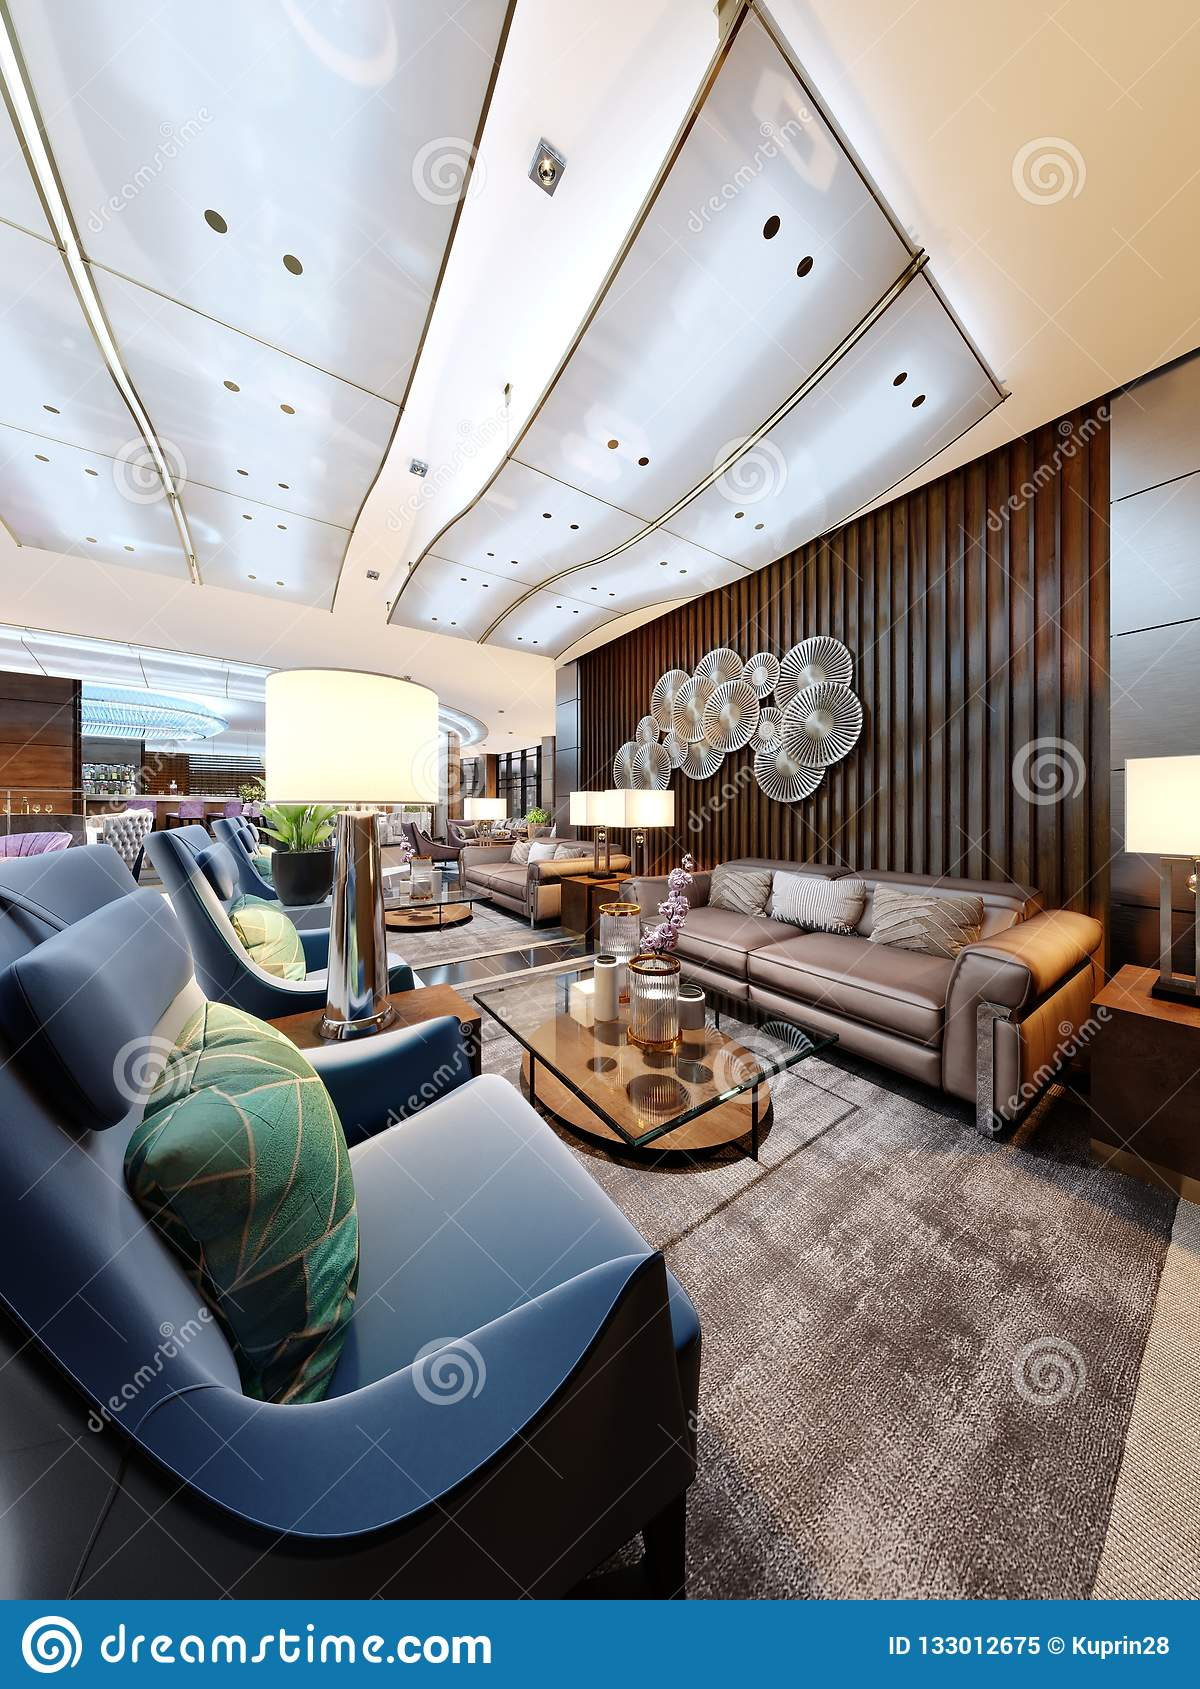 Luxury Lounge Entrance Area In Hotel With Leather Sofa And Fabric Armchair Designer White Cabinets With A Flower Pot And Wooden Stock Illustration Illustration Of Flower Hotel 133012675